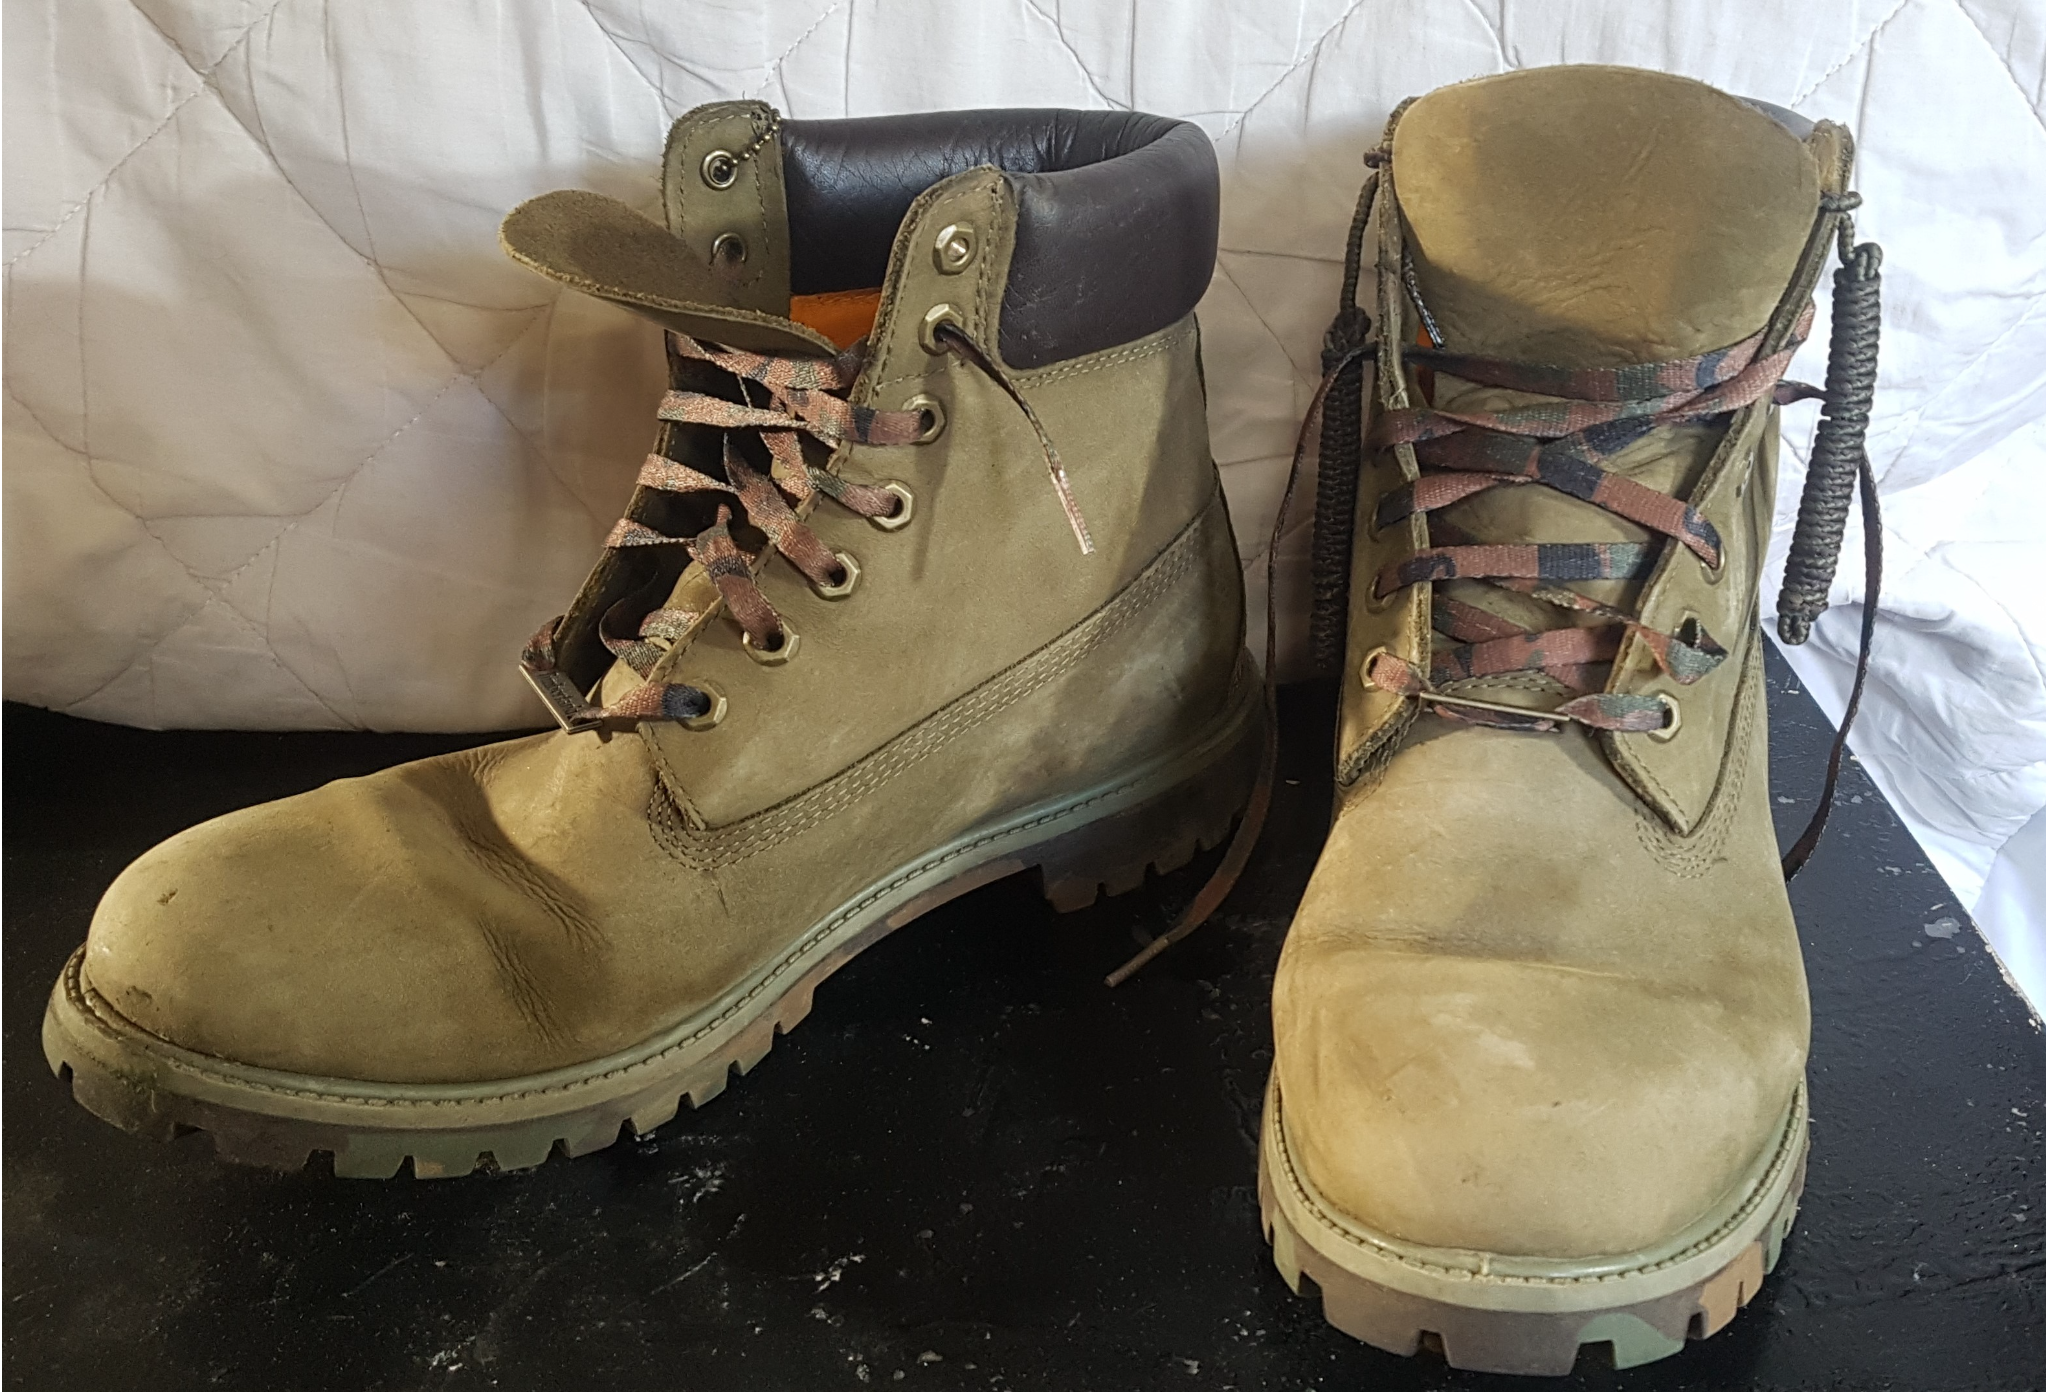 NUBUCK TIMBERLAND WATERPROOF BOOTS OLIVE/CAMO 11.5 UK **FREE DELIVERY IN LONDON**